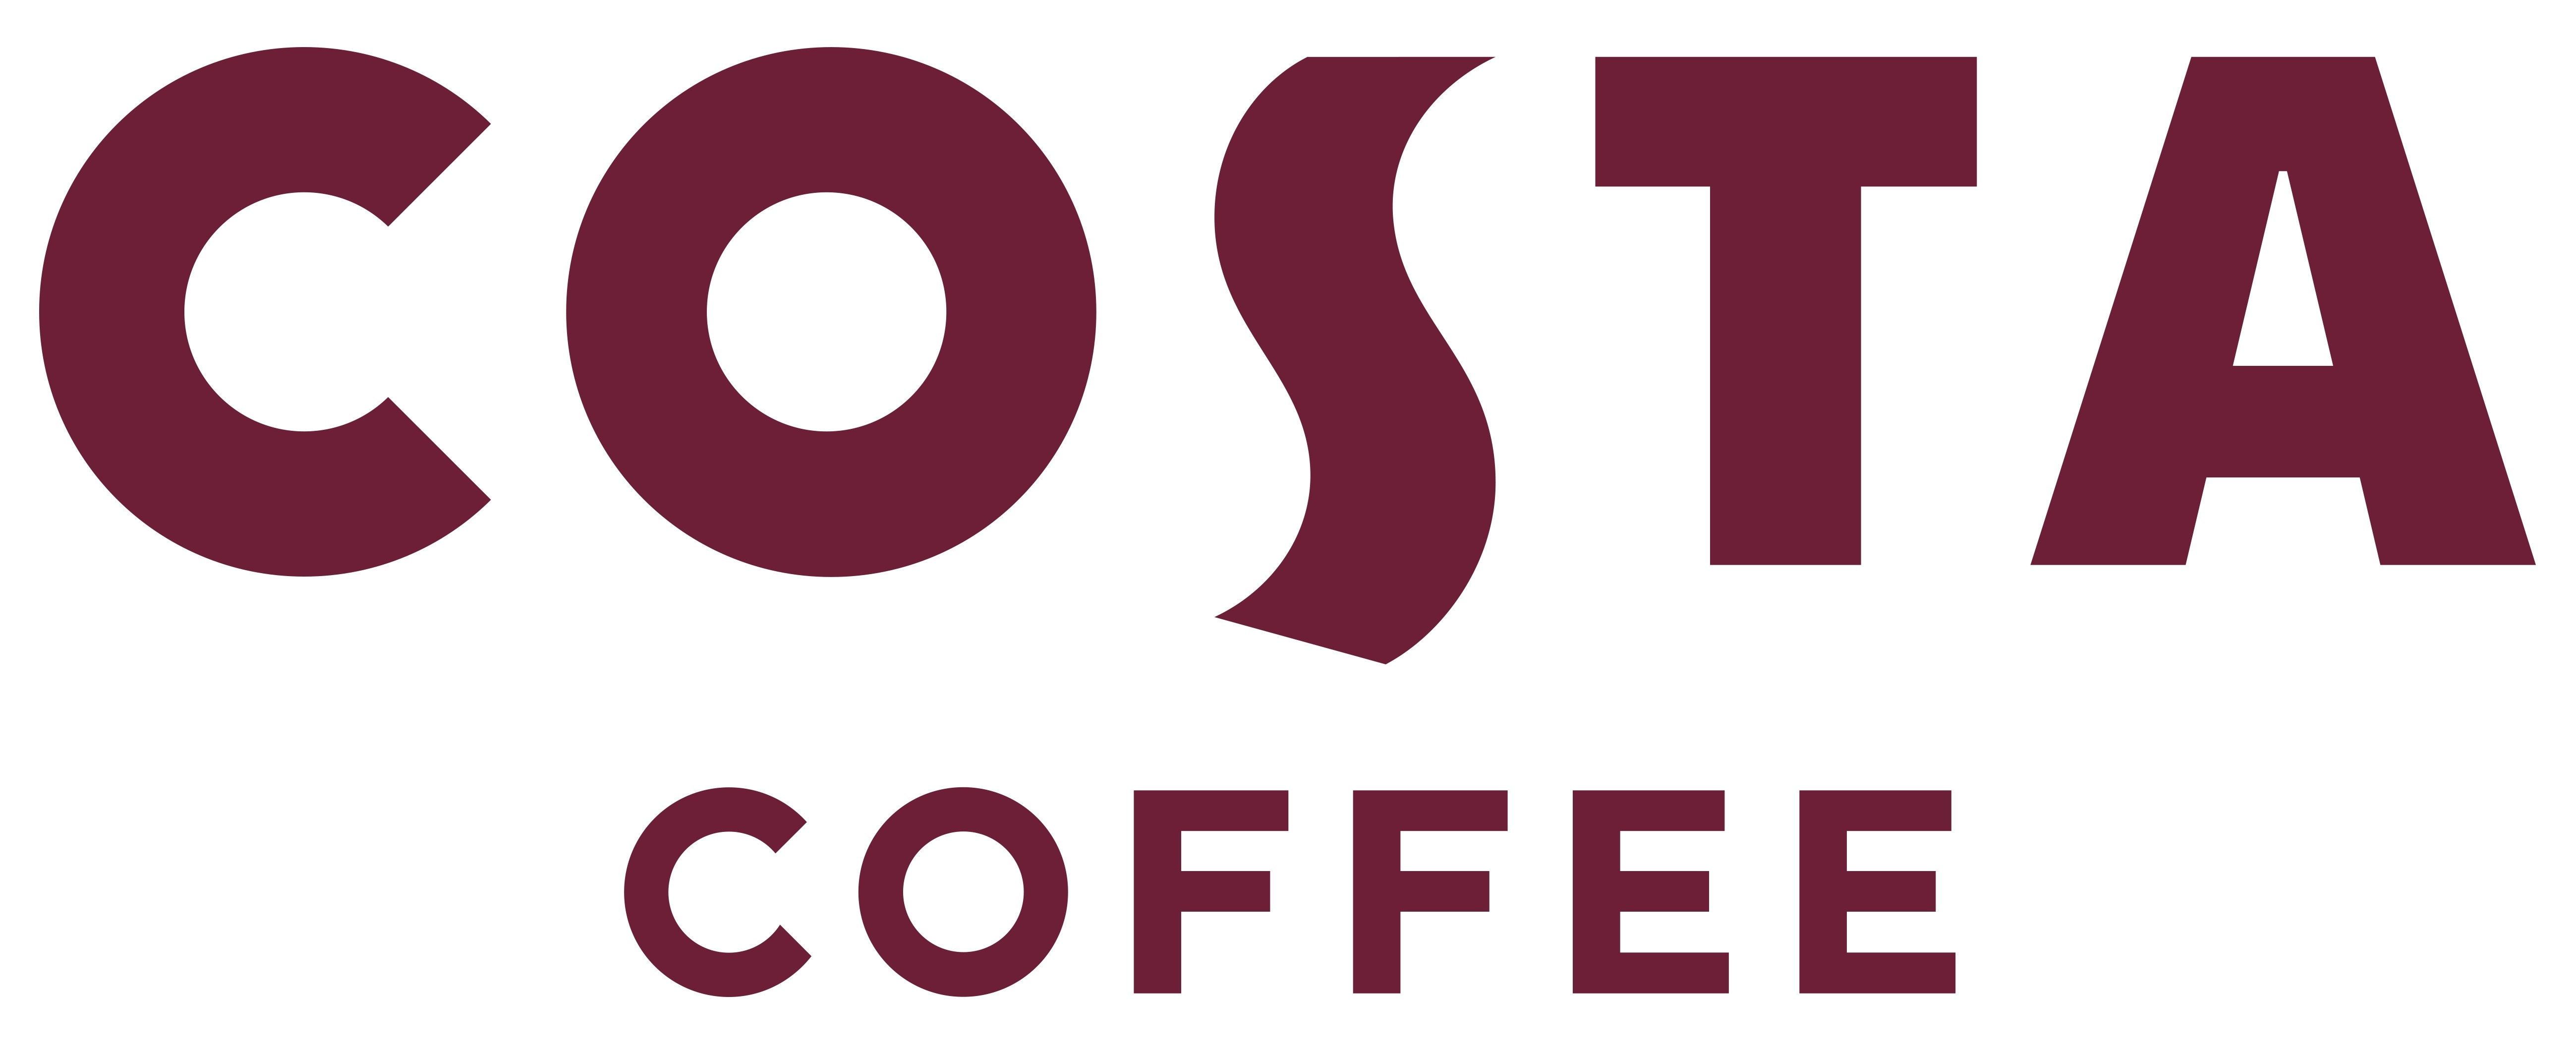 Costa Coffee Announces Appointment Of New Ceo Business Wire